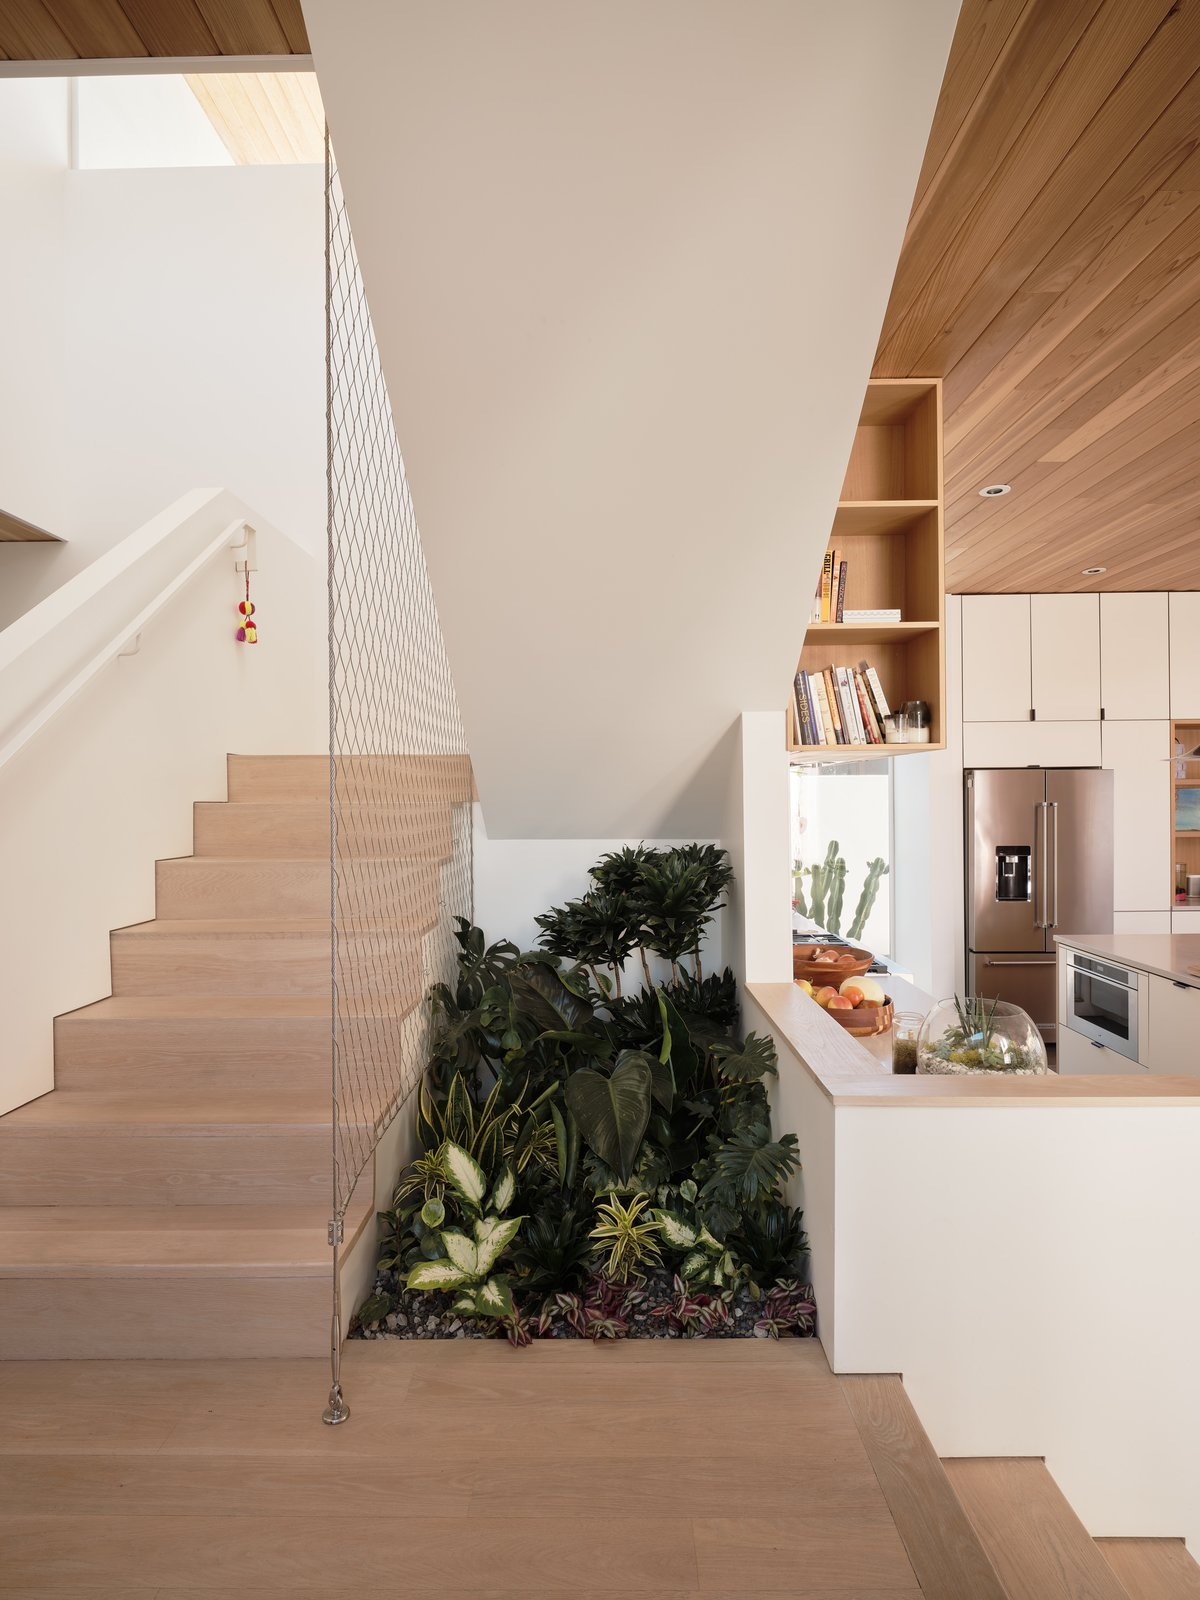 Courtyard House by Ras-a Studio wood staircase with mesh guardrail and live plants